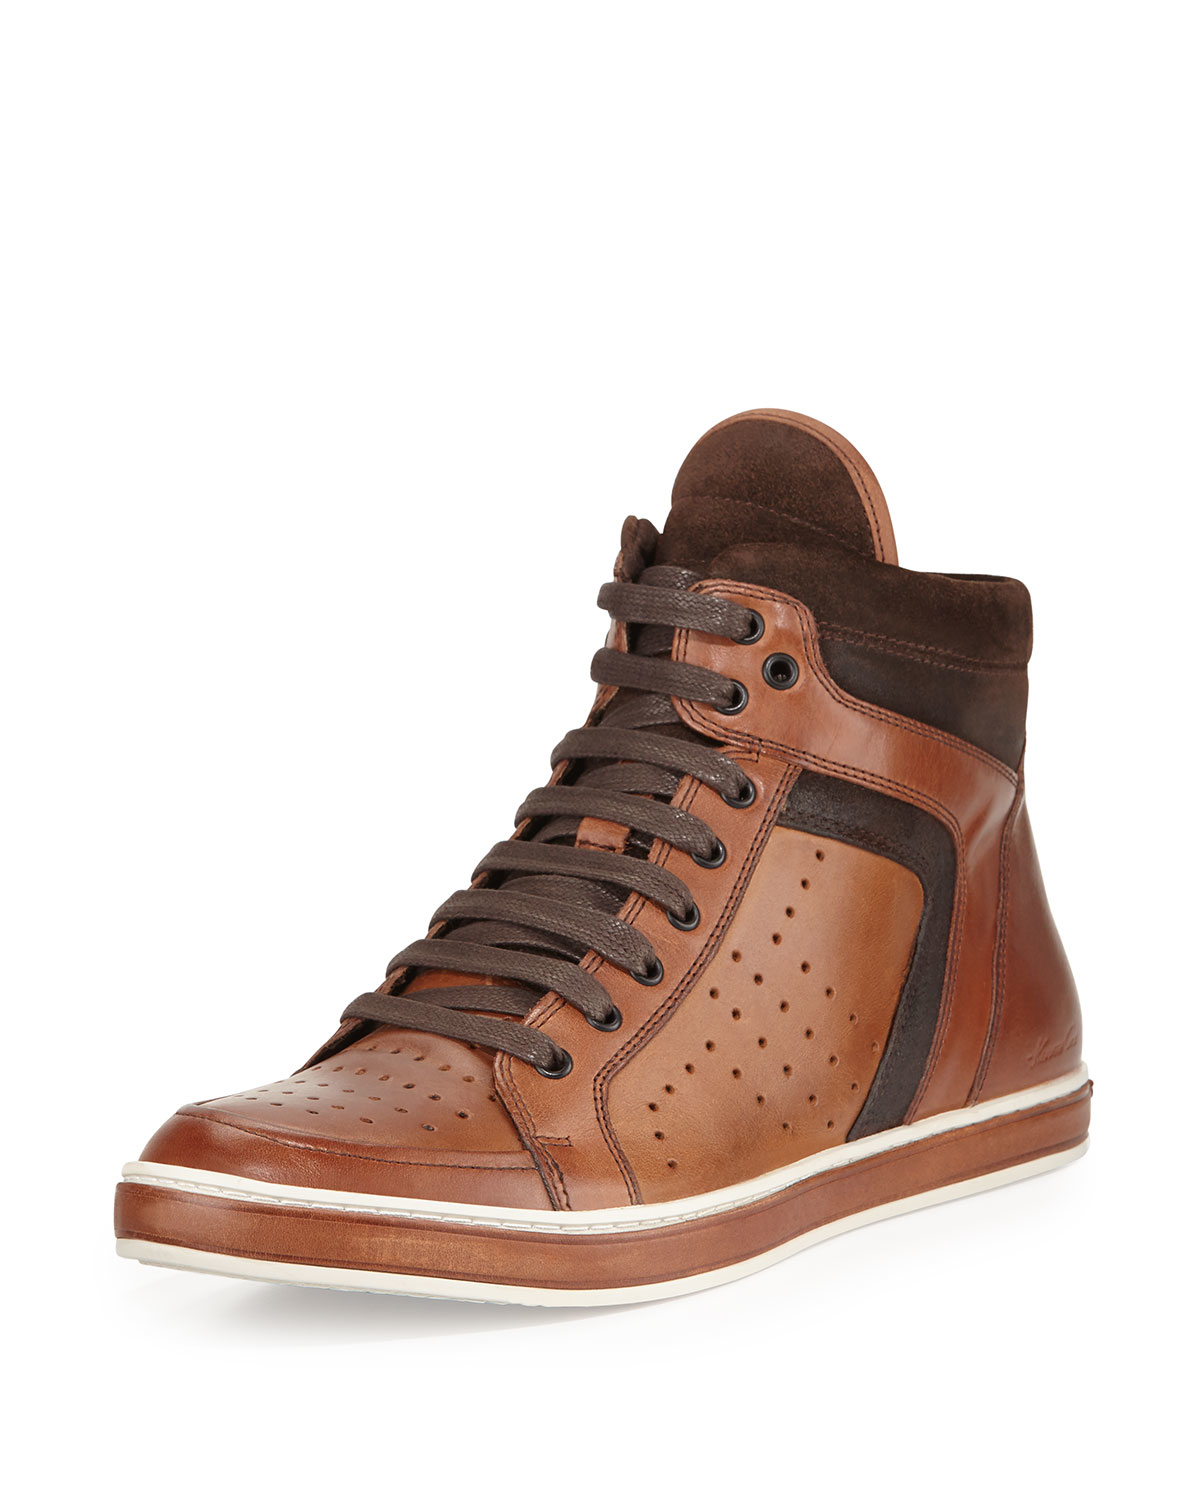 kenneth cole mens high top sneakers